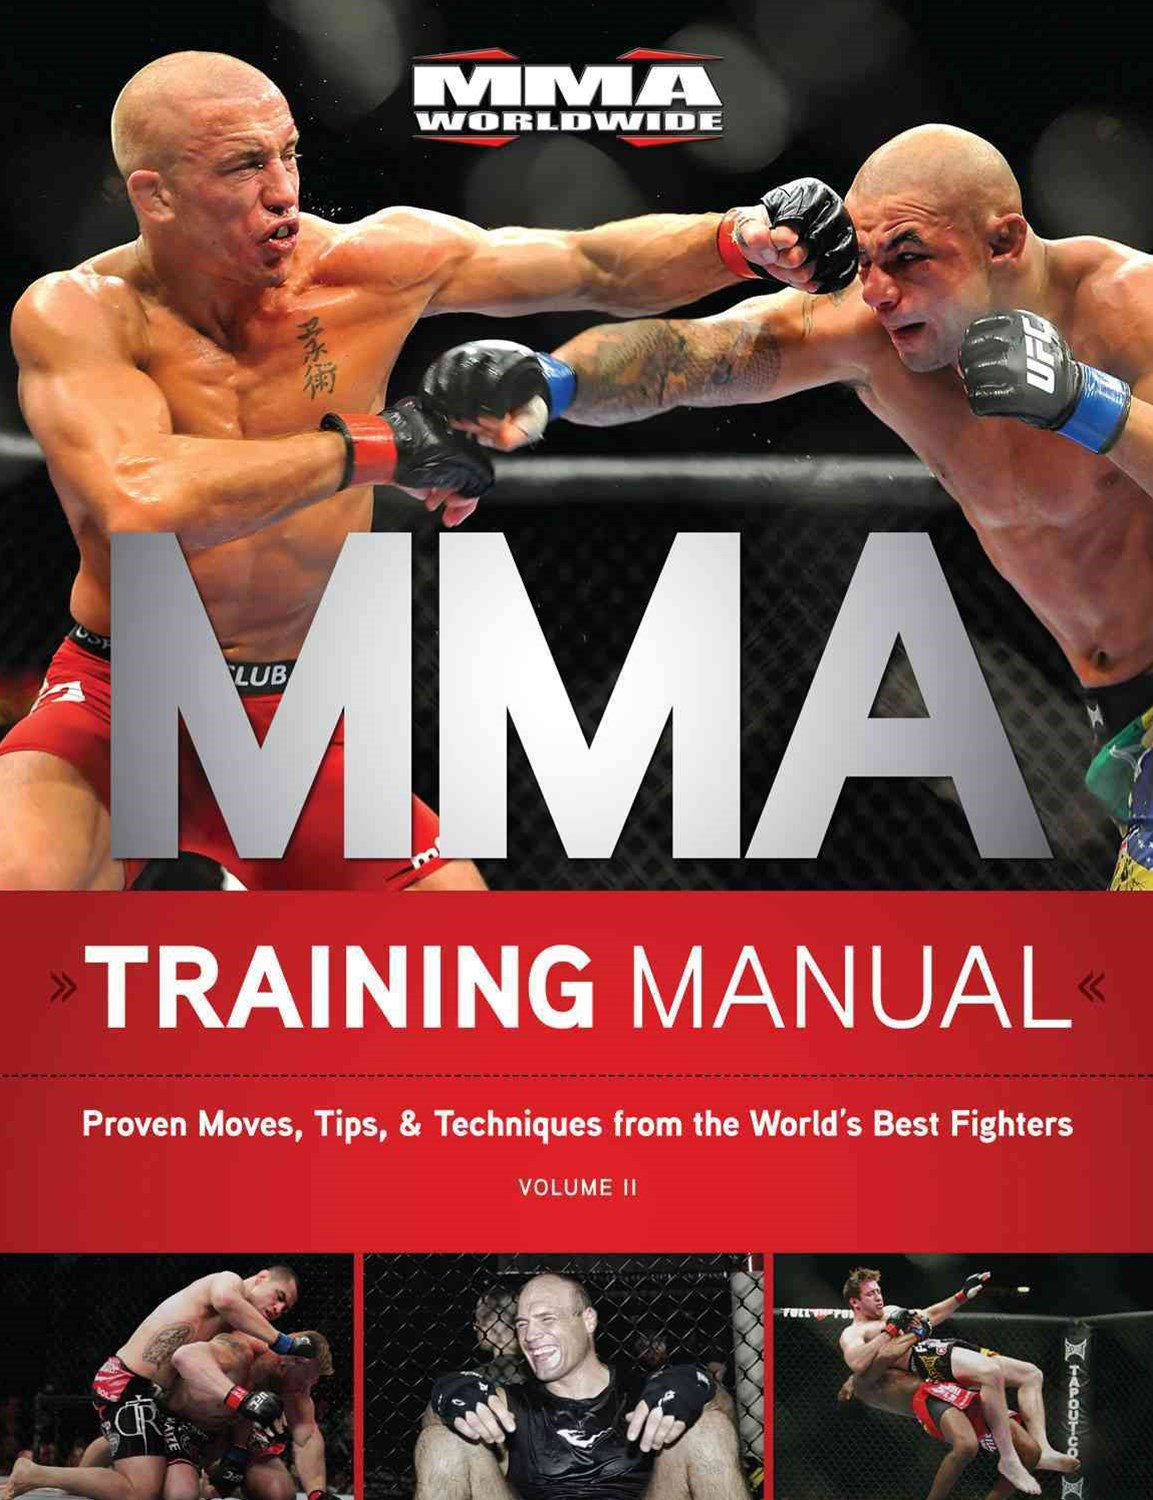 MMA Training Manual Volume II